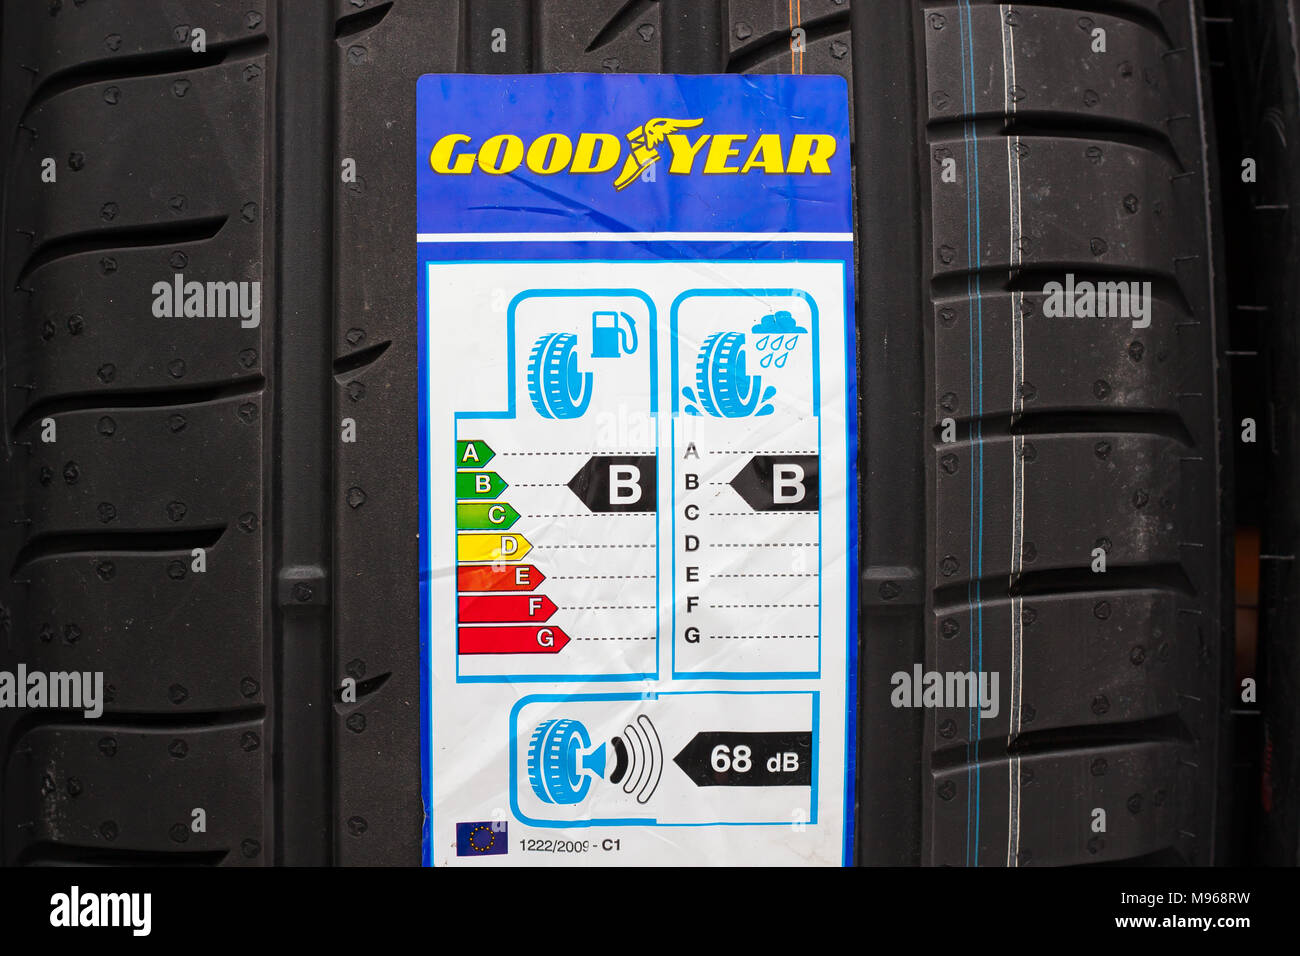 Brand new Goodyear car tyre with label with information about safety, fuel efficiency and external tyre noise. Editorial use only - Stock Image